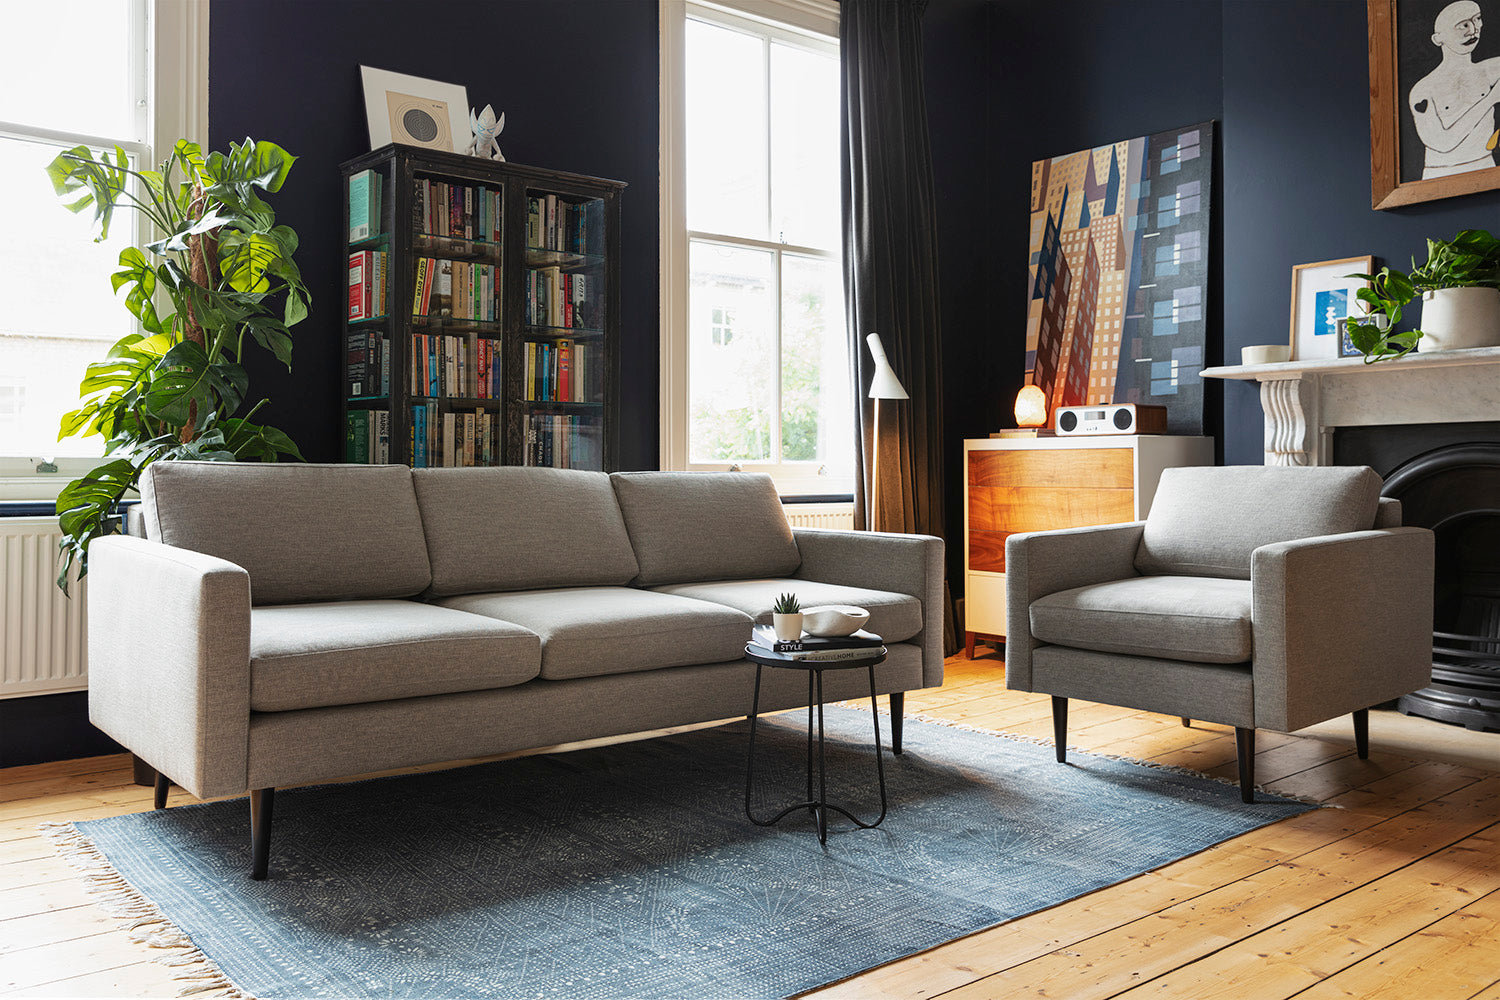 MODEL 01 SWYFT SOFA - LINEN SHADOW - 3 SEATER